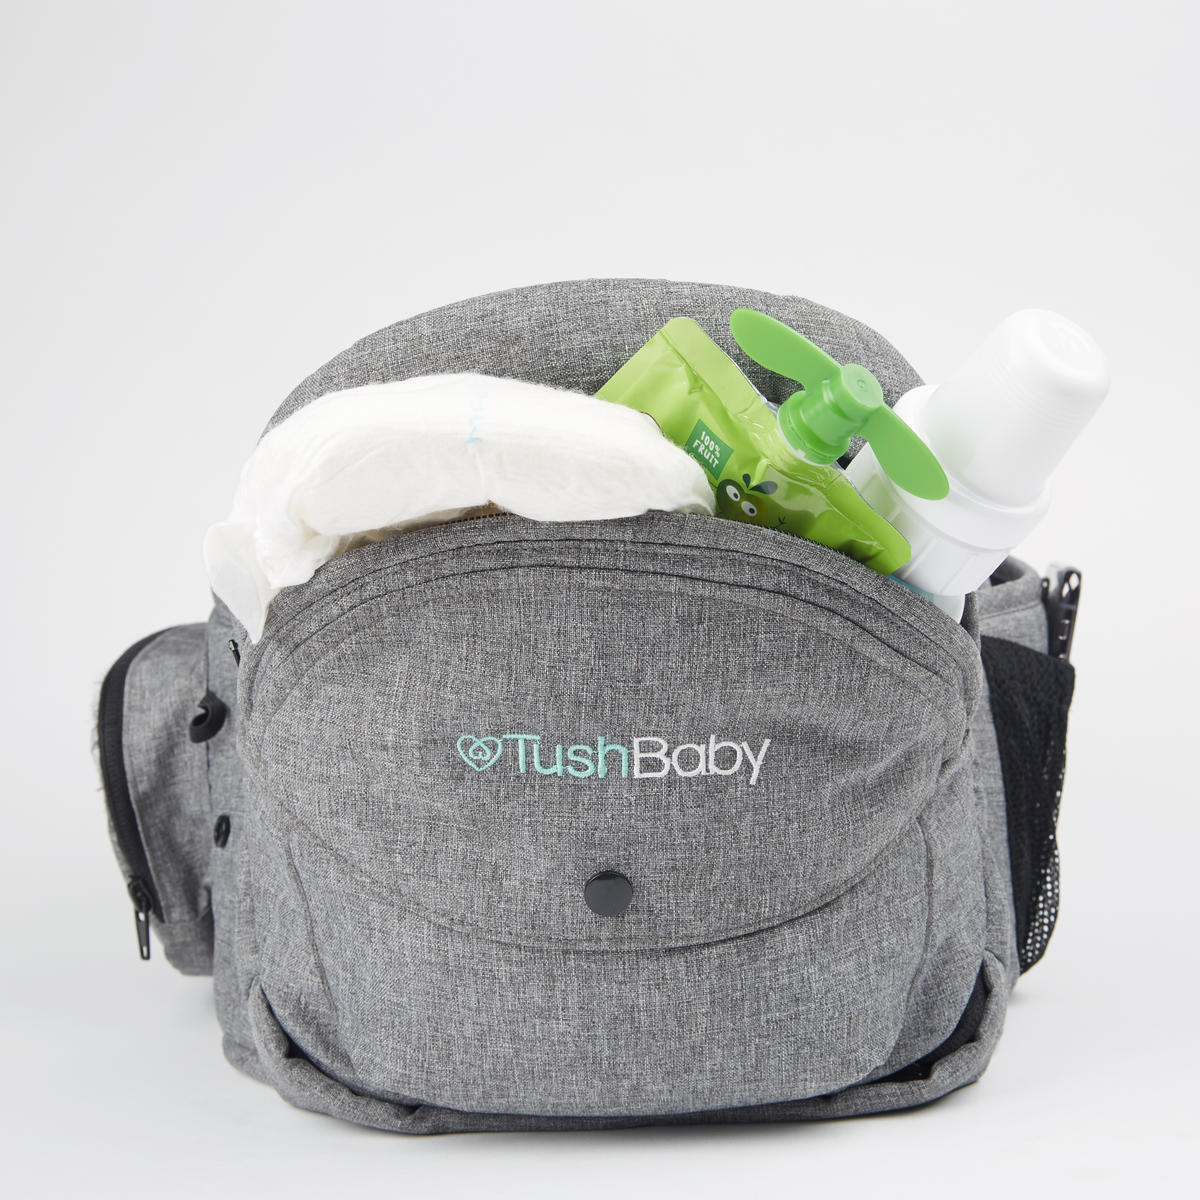 TushBaby Carrier Front View